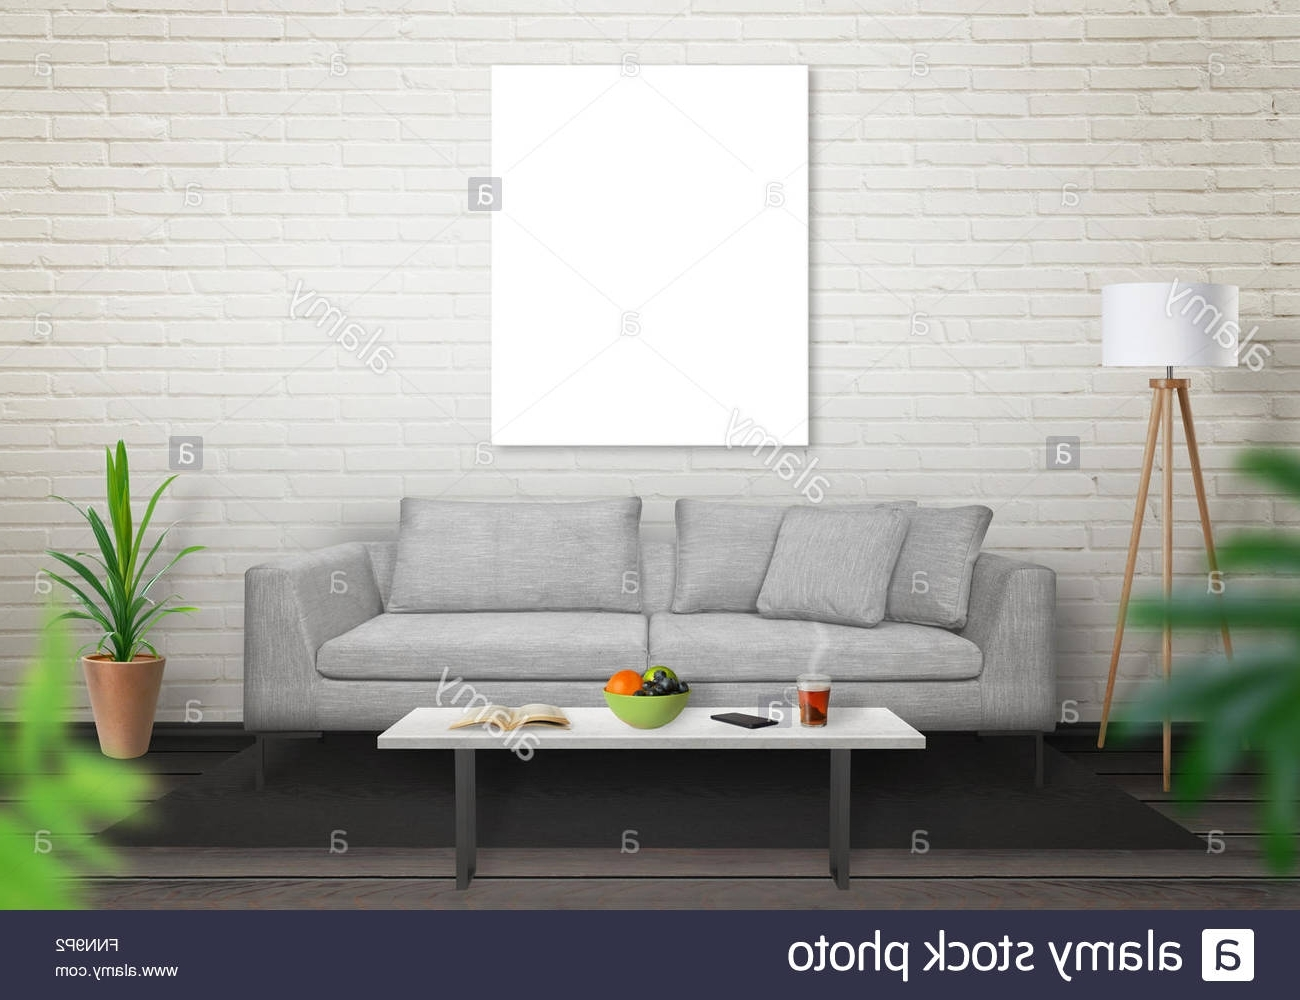 2018 Mockup Canvas Wall Art Within Isolated Art Canvas In Living Room For Mockup (View 8 of 15)